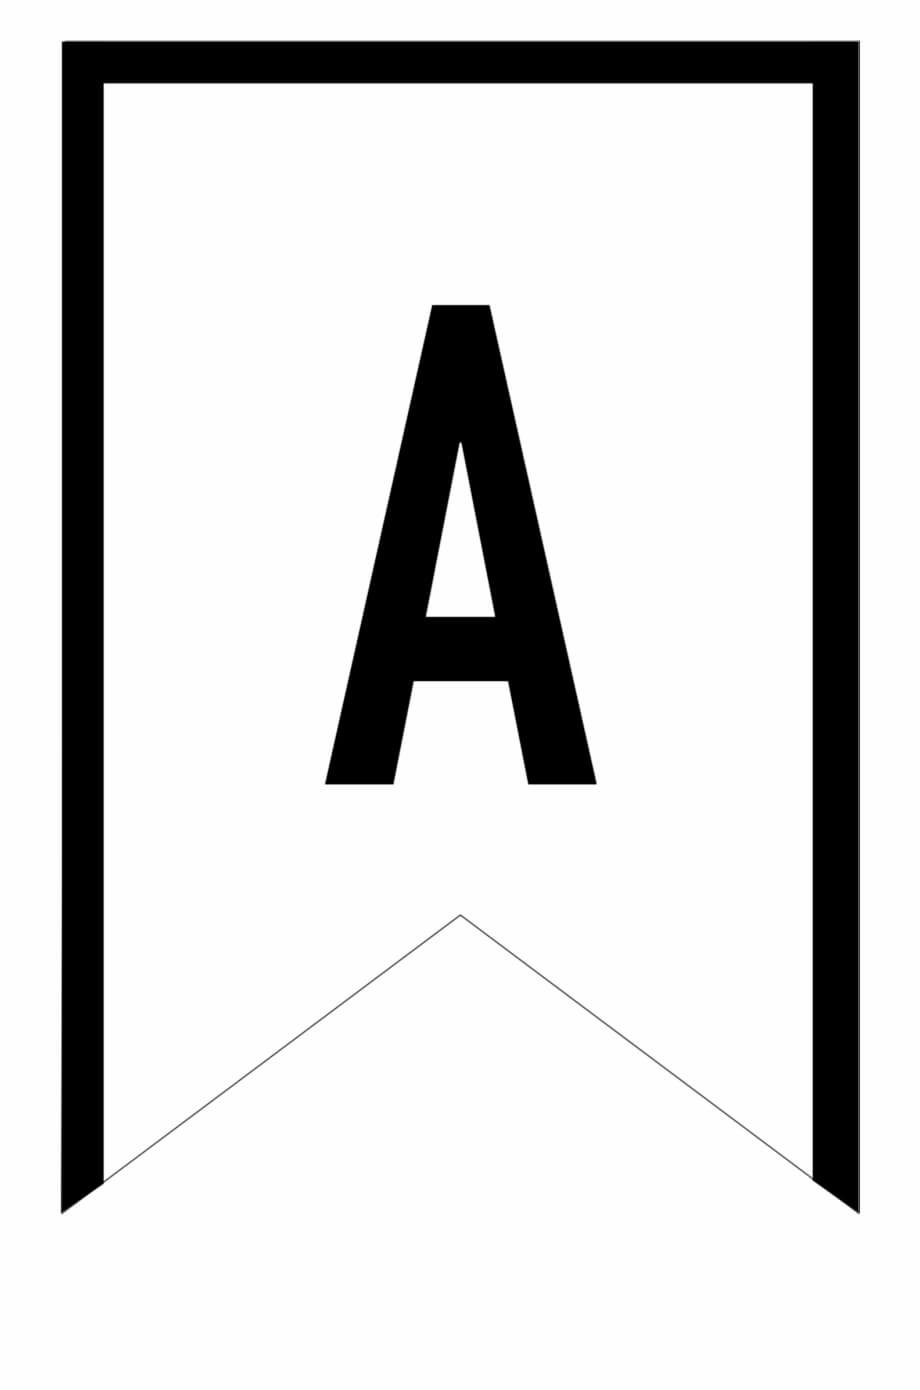 Banner Templates Free Printable Abc Letters - Printable Throughout Free Letter Templates For Banners